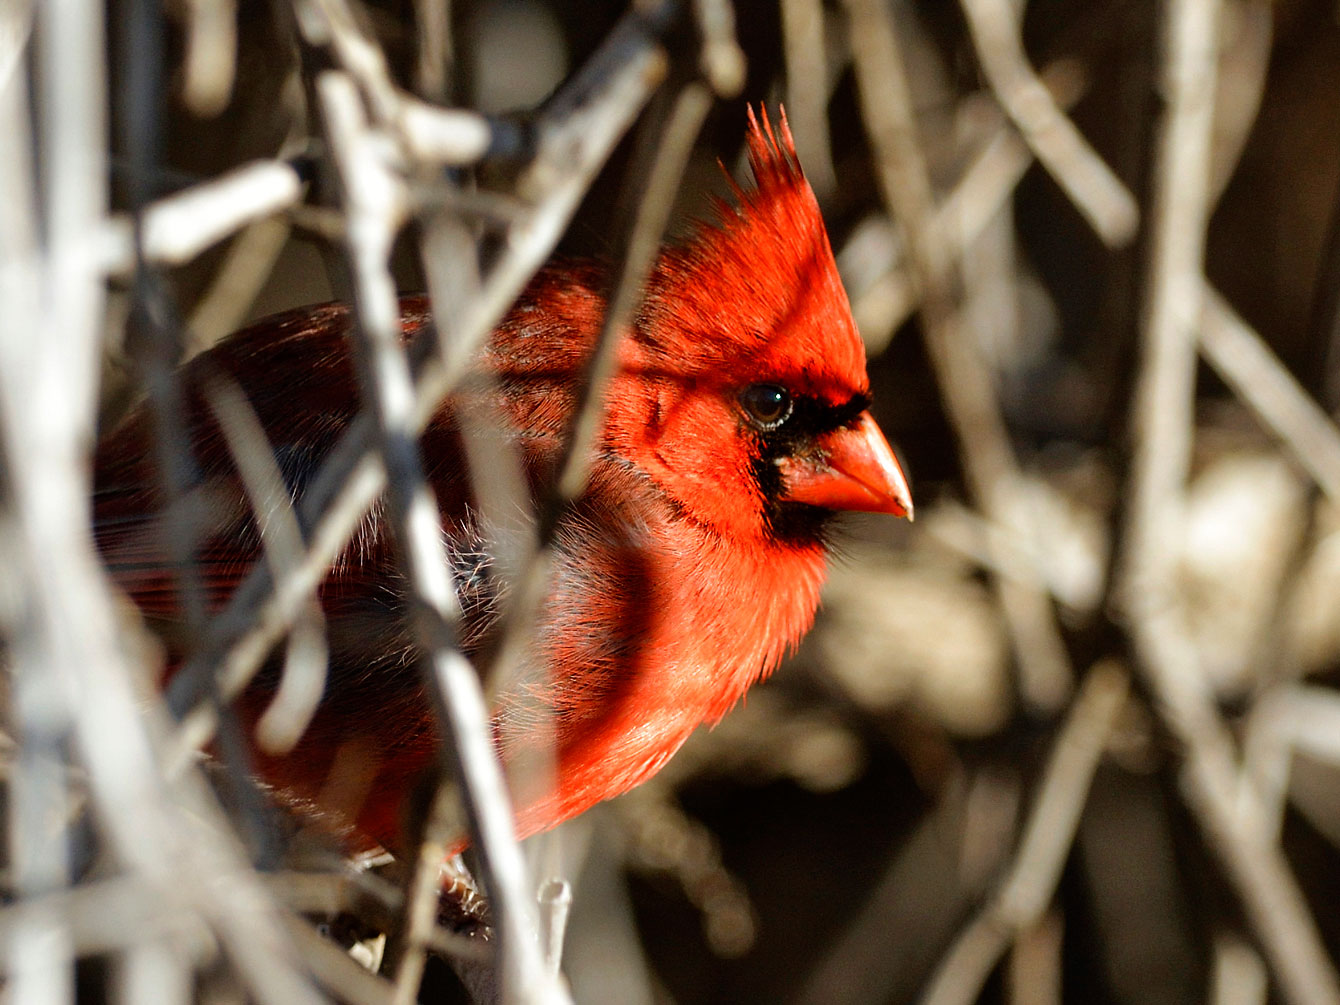 Most Northern Cardinals have a mutation that turns their plumage red. But a few harbor a much rarer mutation that leaves their feathers bright yellow. Jim West/Audubon Photography Awards